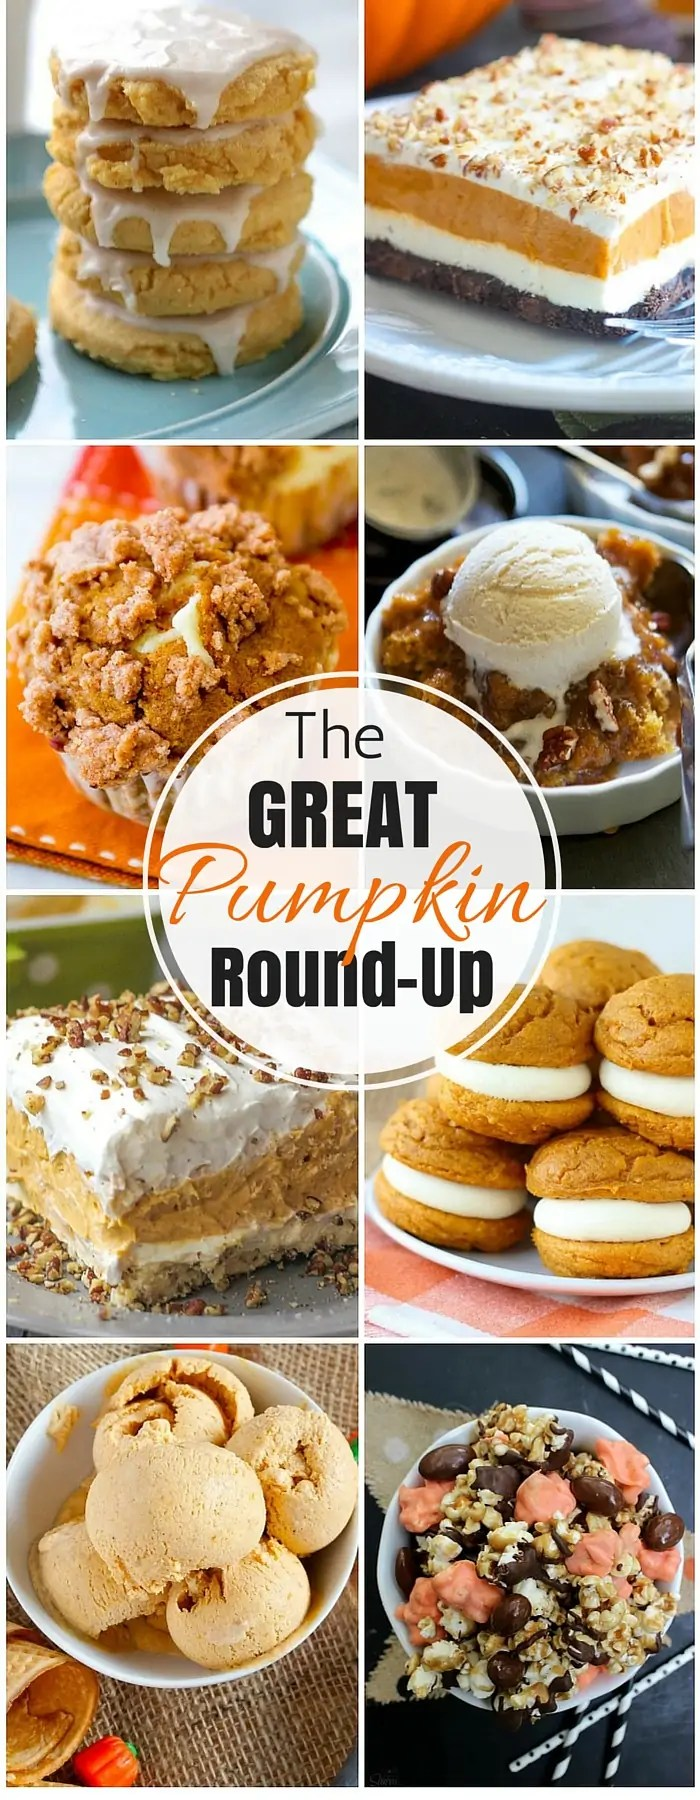 Can't wait to try these amazing pumpkin treats!